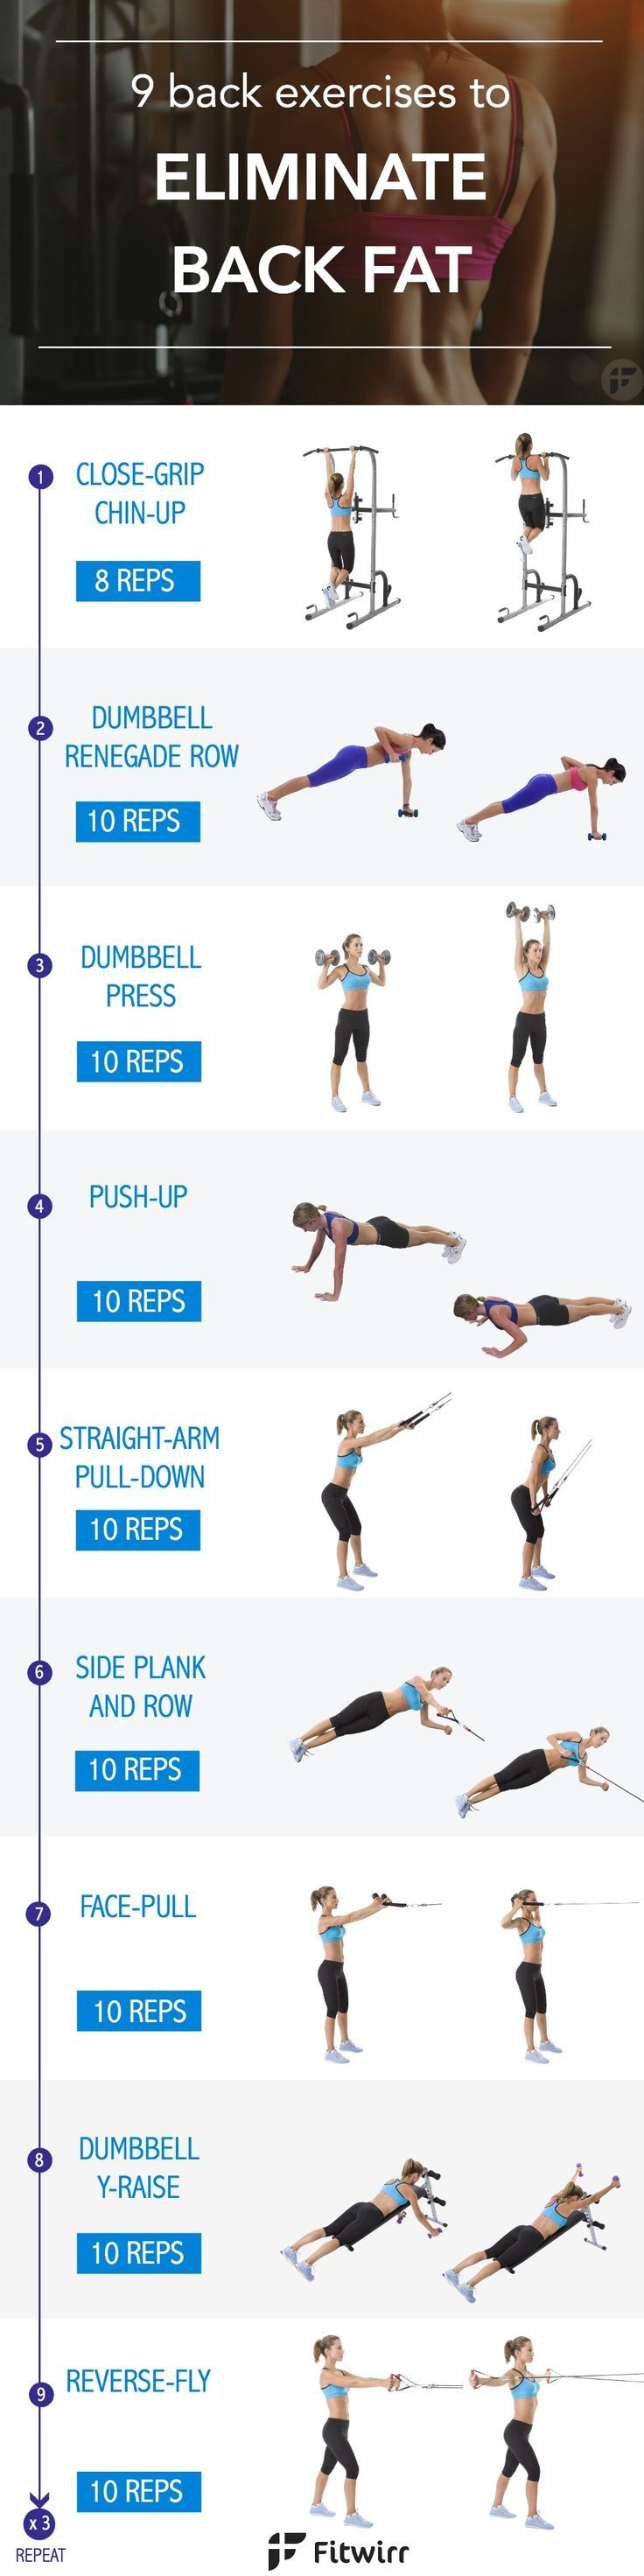 ed4fe51fa0 9 back fat exercises to eliminate the bra bulge. It s time to say good bye  to those annoying back fat. Tone your back with these 9 exercises